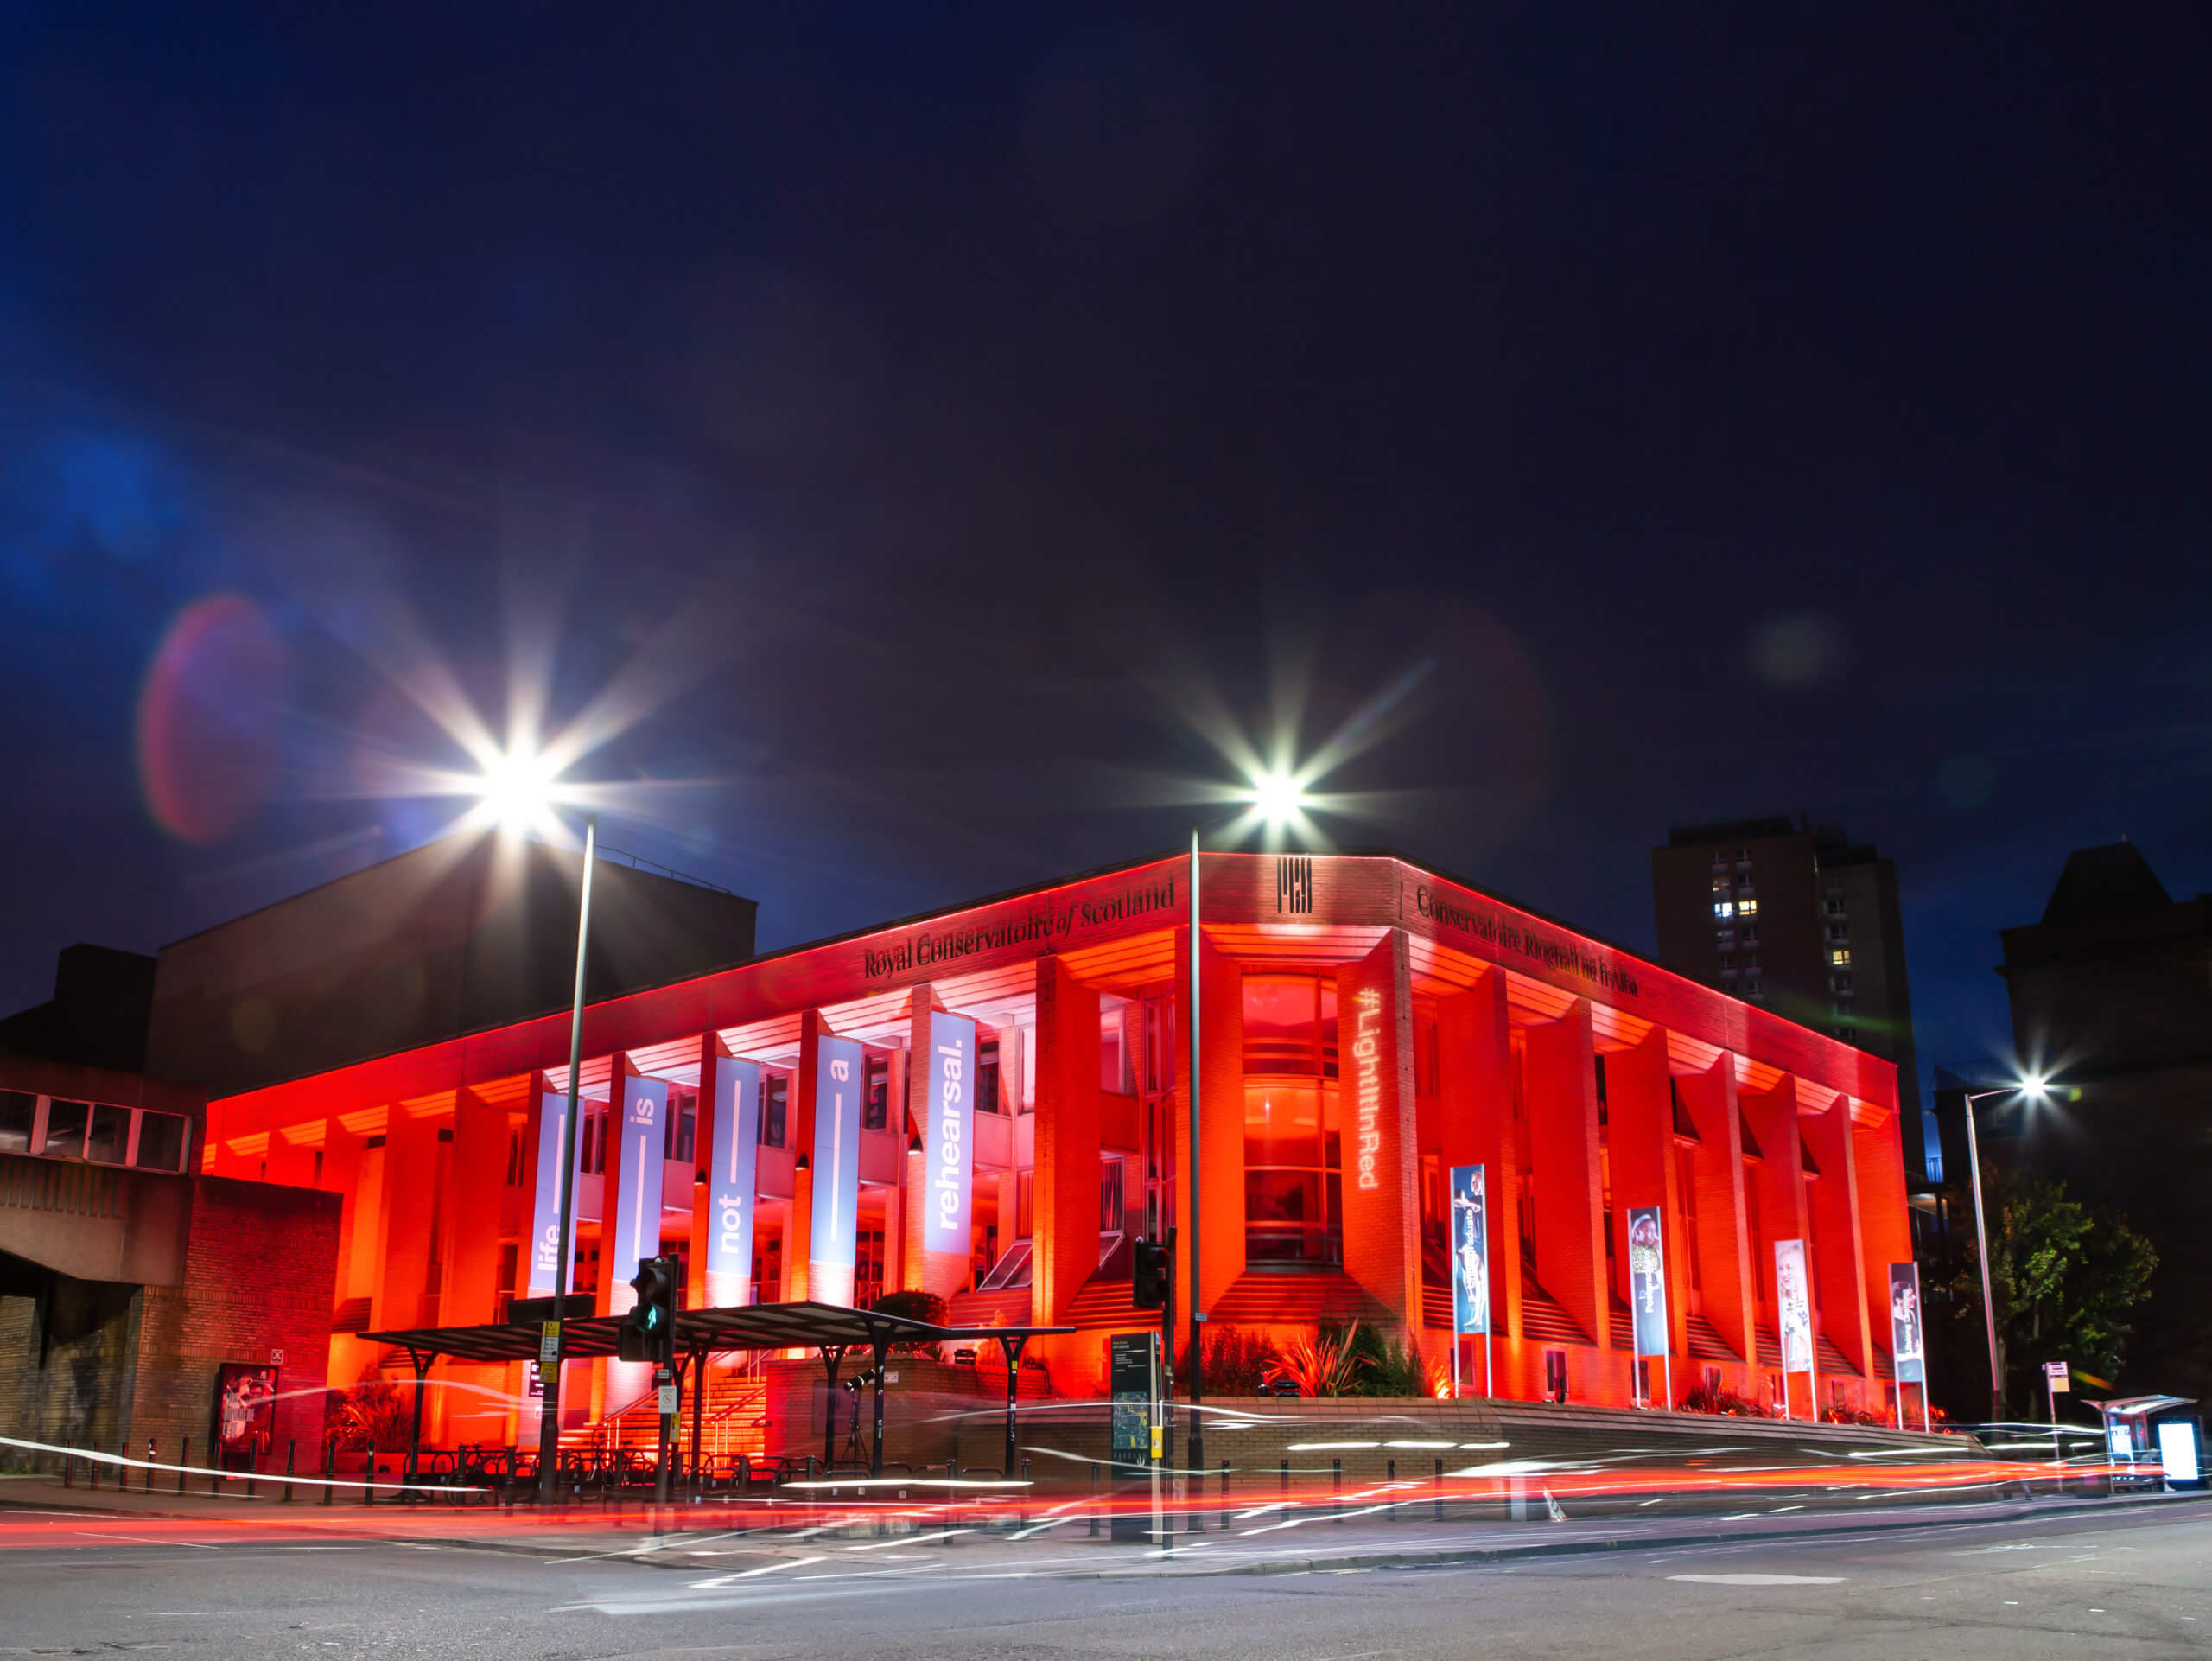 RCS sees red to highlight danger for live events sector from Covid crisis Image